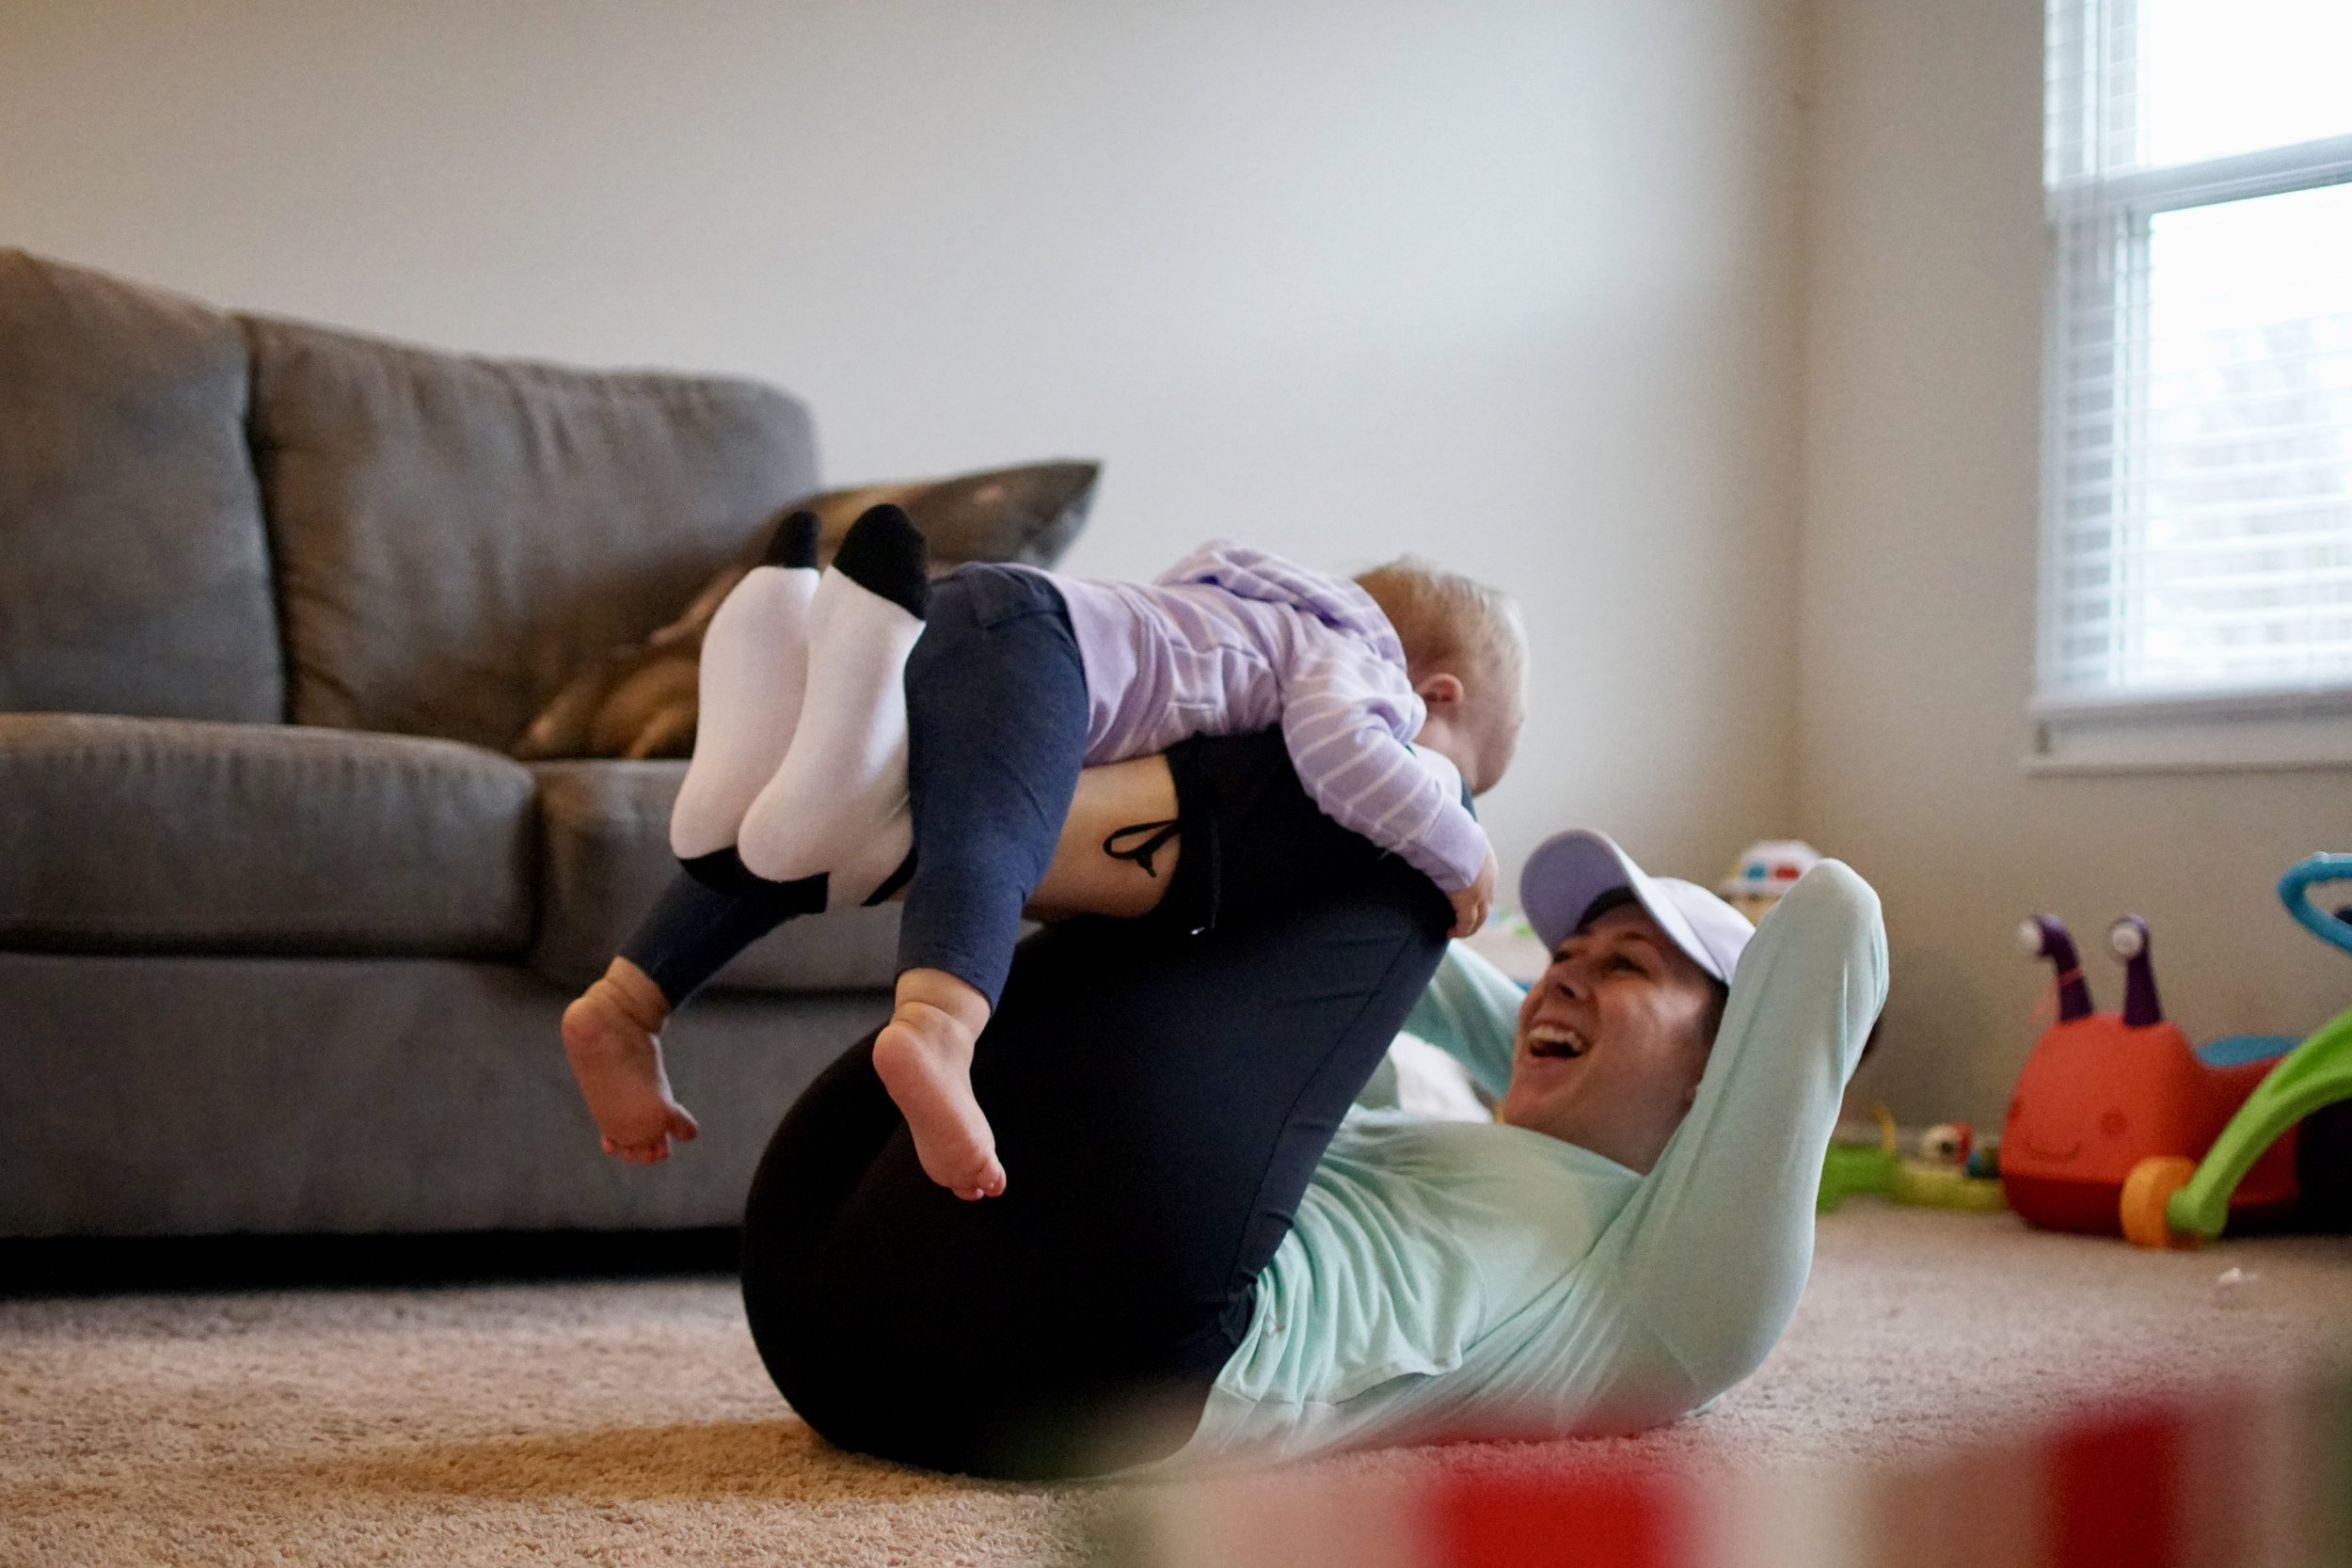 mom and daughter physical activity - doing crunches together - parent blogger